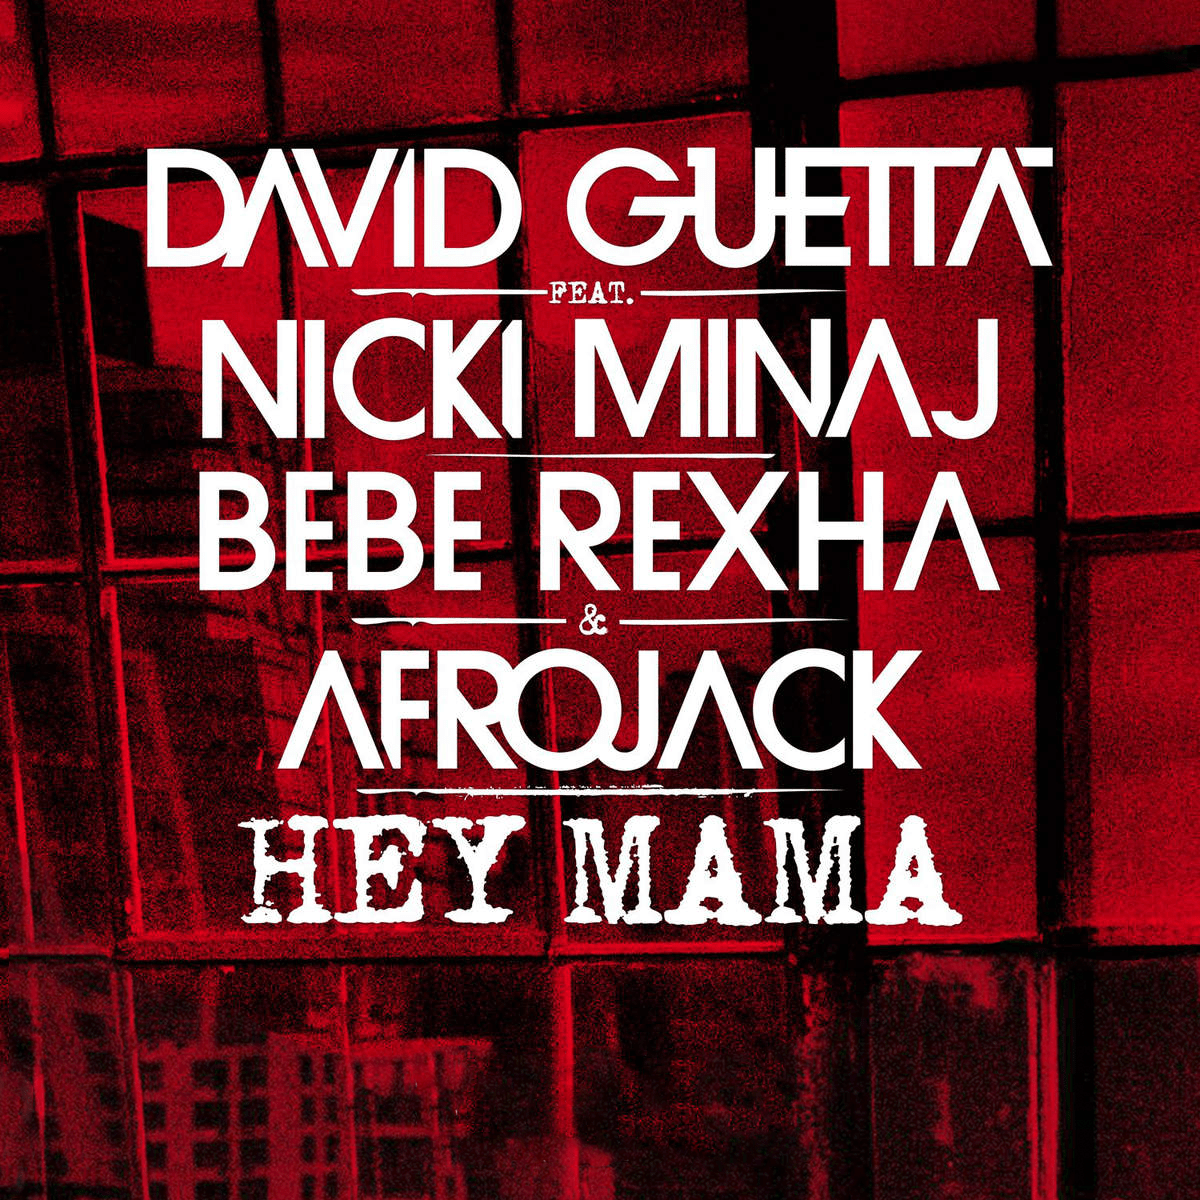 Hey Mama (feat. Nicki Minaj & Afrojack) - David Guetta